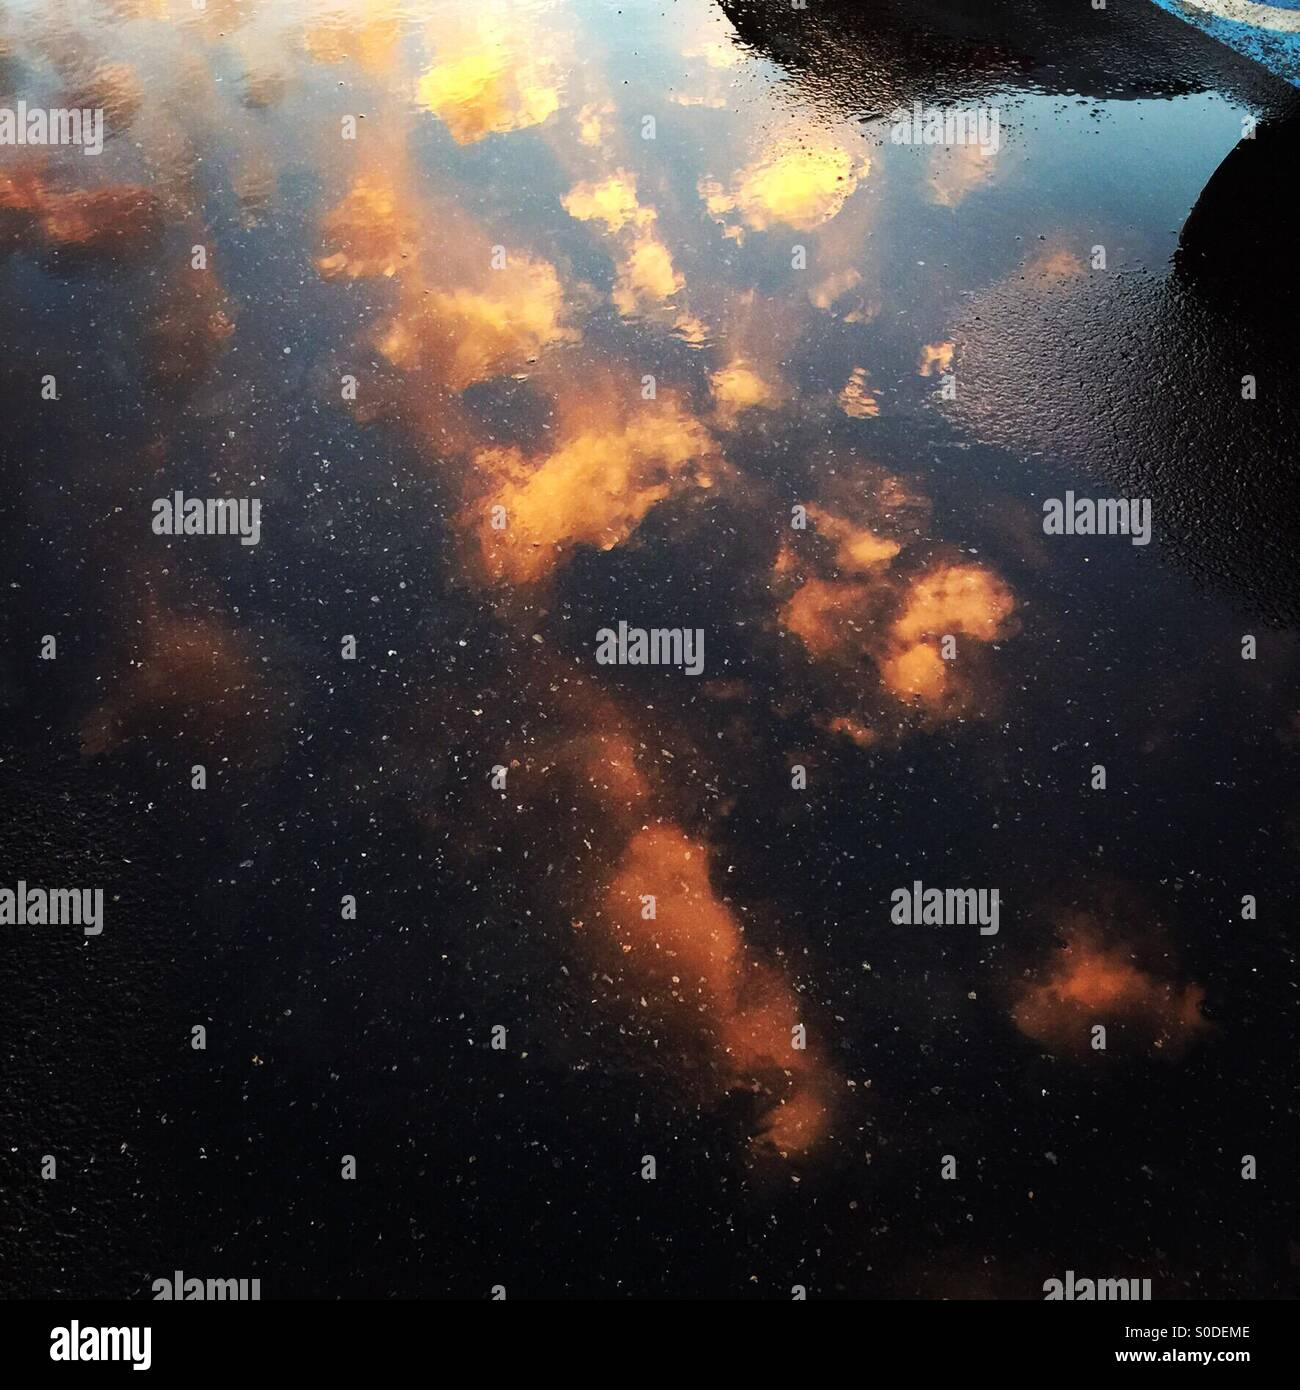 dramatic-clouds-reflected-in-a-parking-lot-puddle-S0DEME.jpg